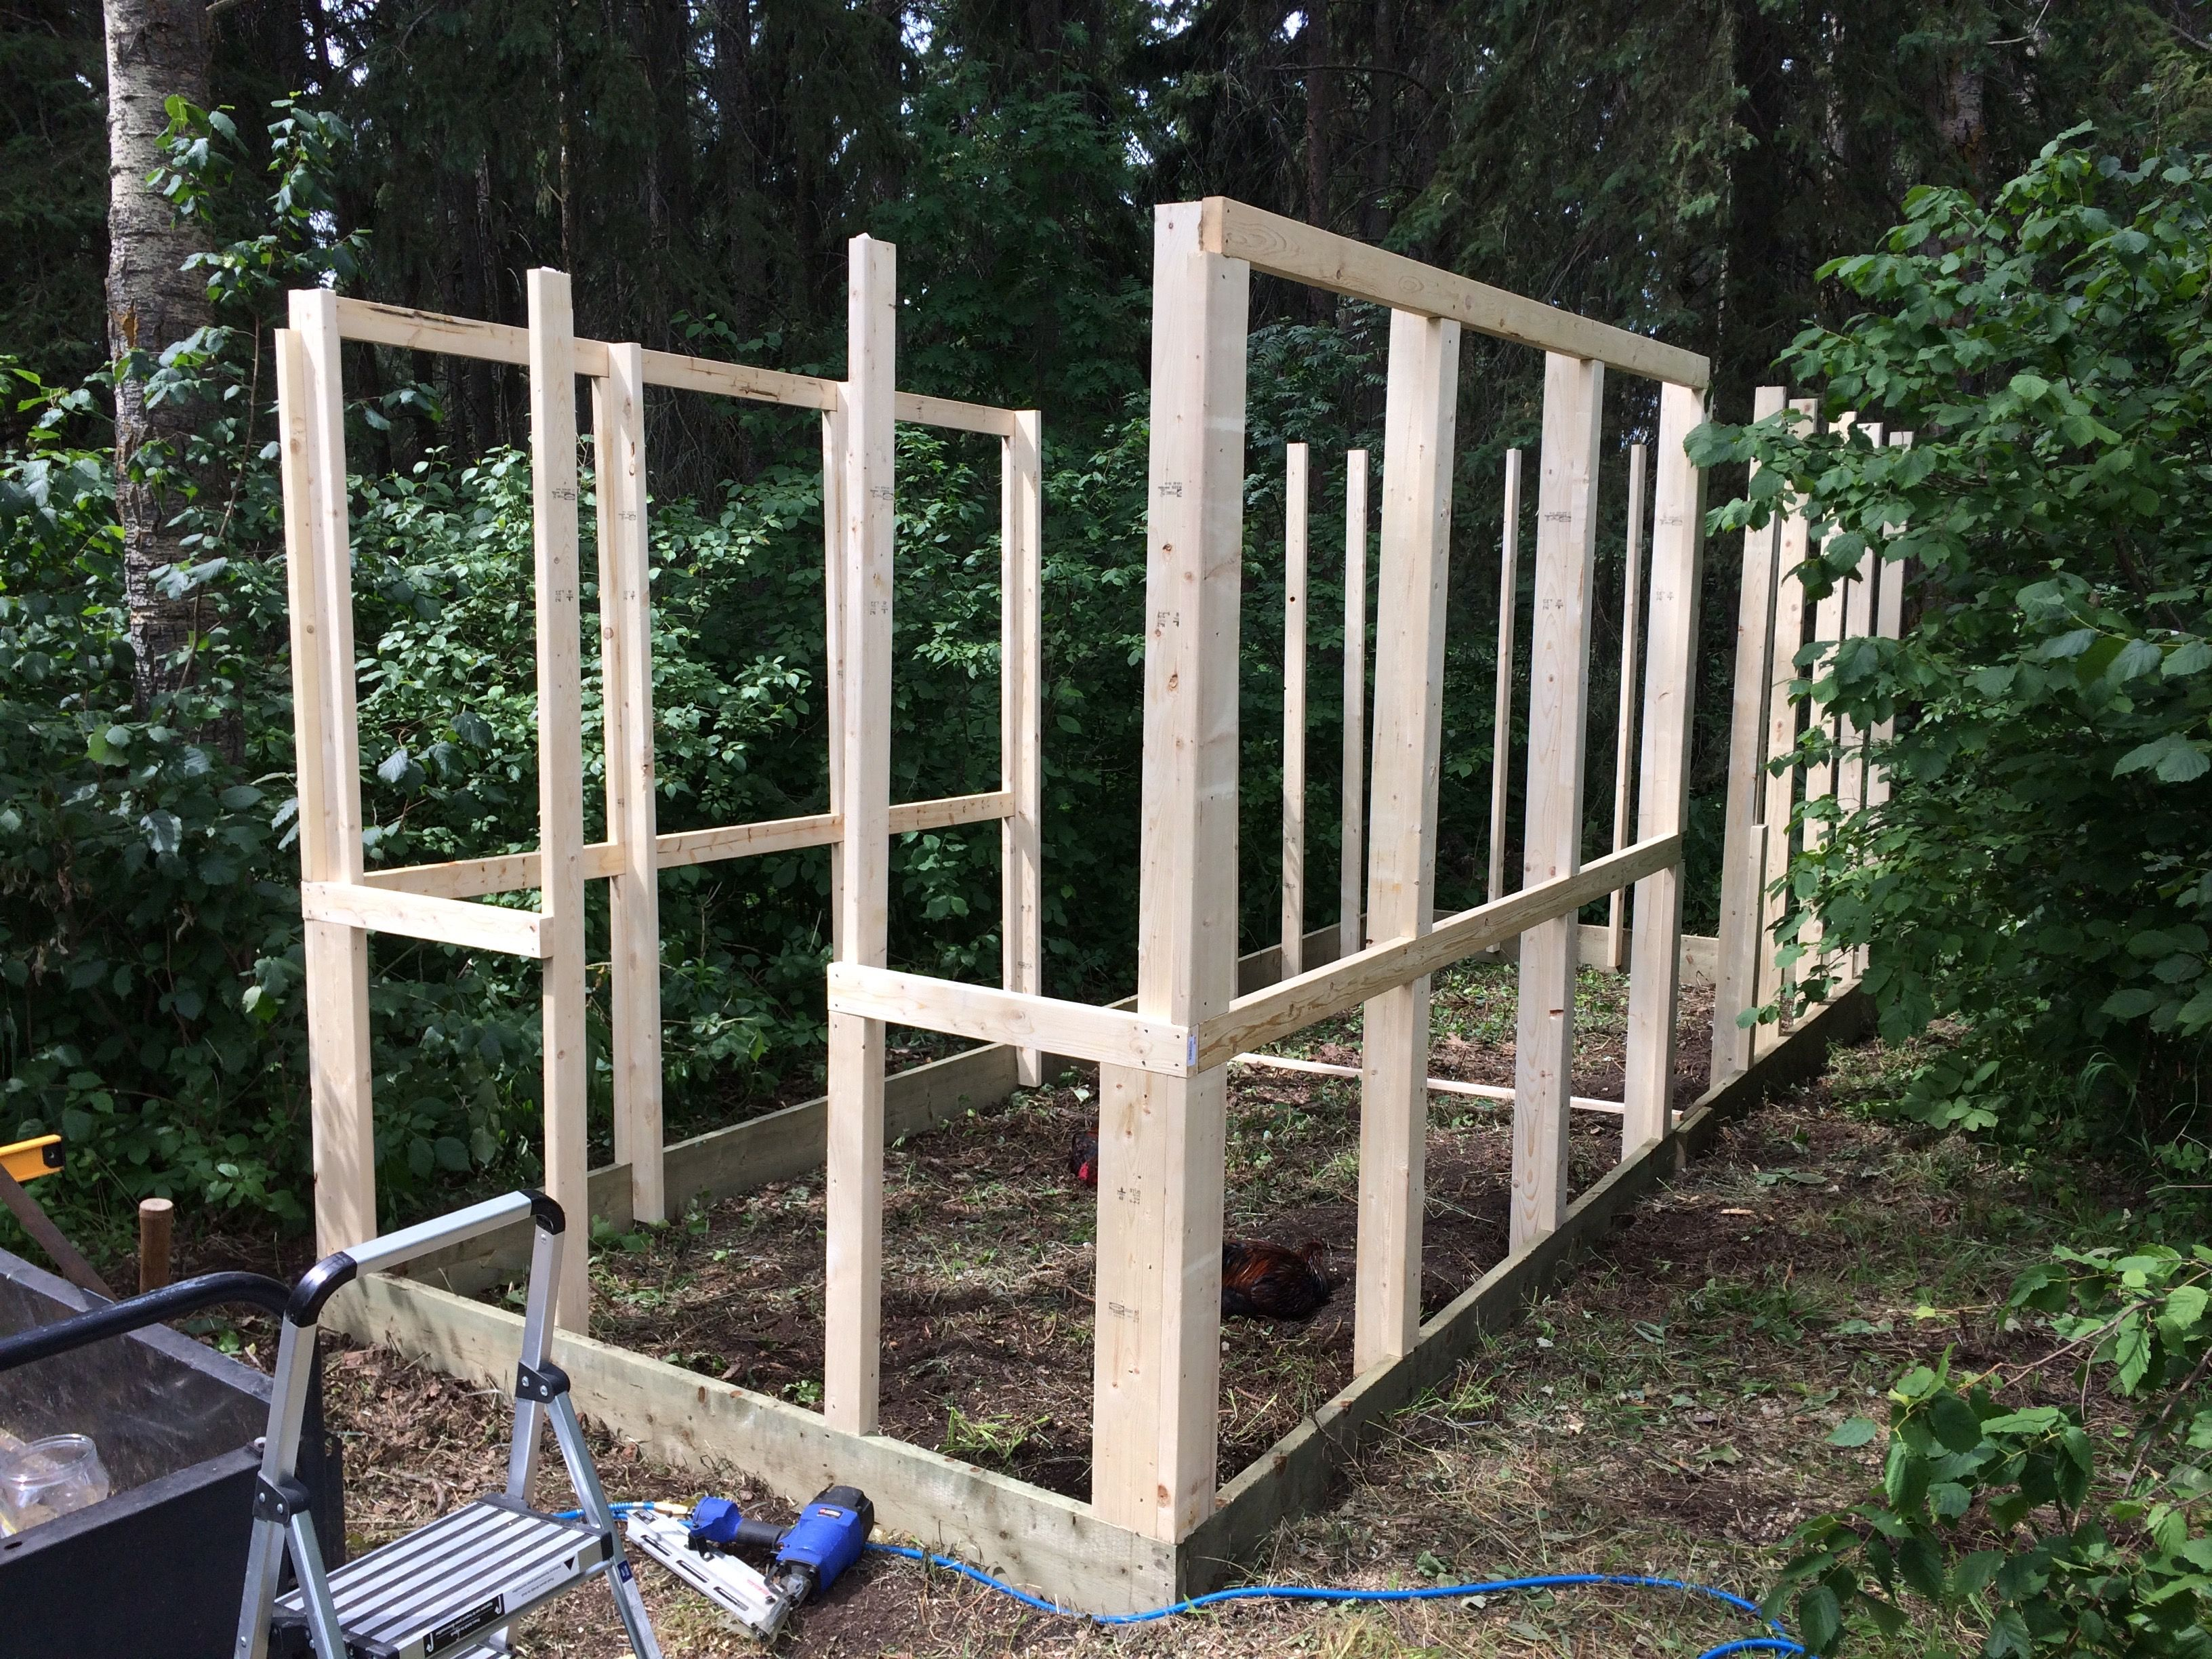 3 Rooster Chicken Coop Framing Stud Walls And Cross Pieces This Will Be Followed By Some Roofing Cross Members To Support Netti Stud Walls Coop Chicken Coop